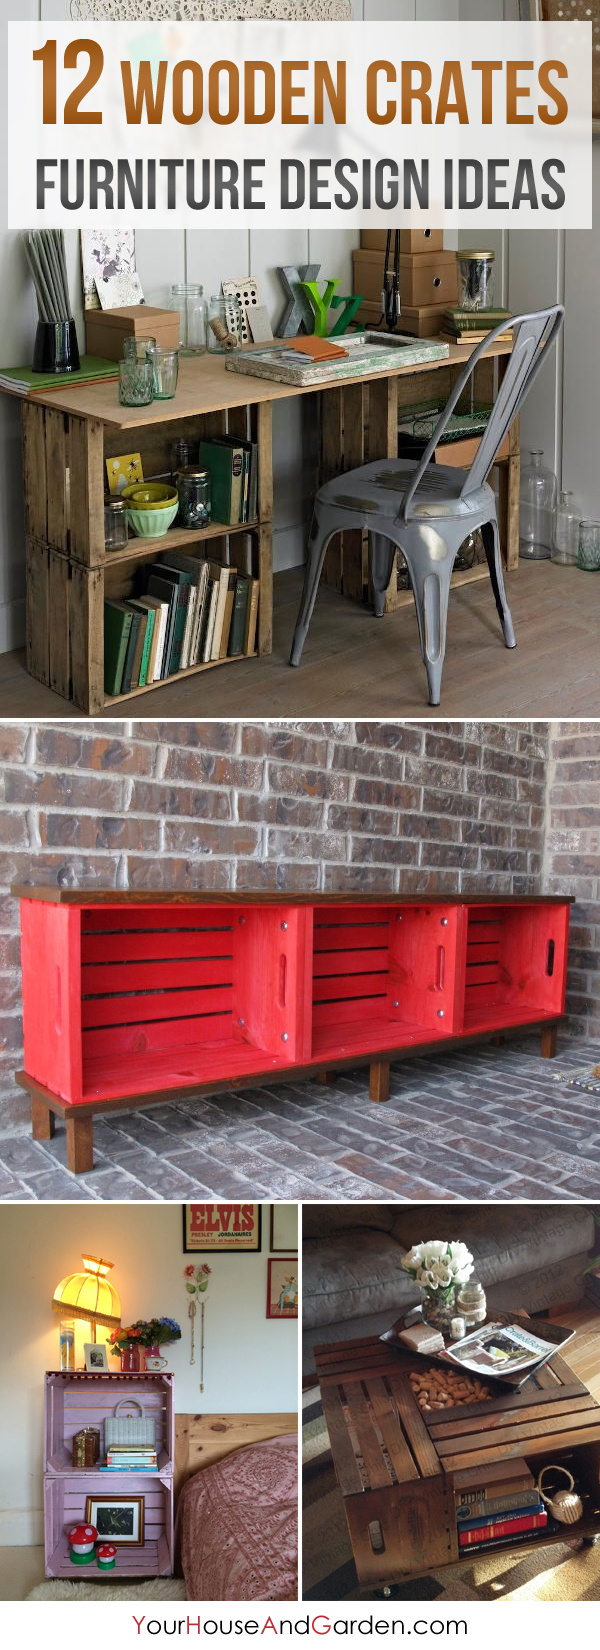 rustic wooden projects 19